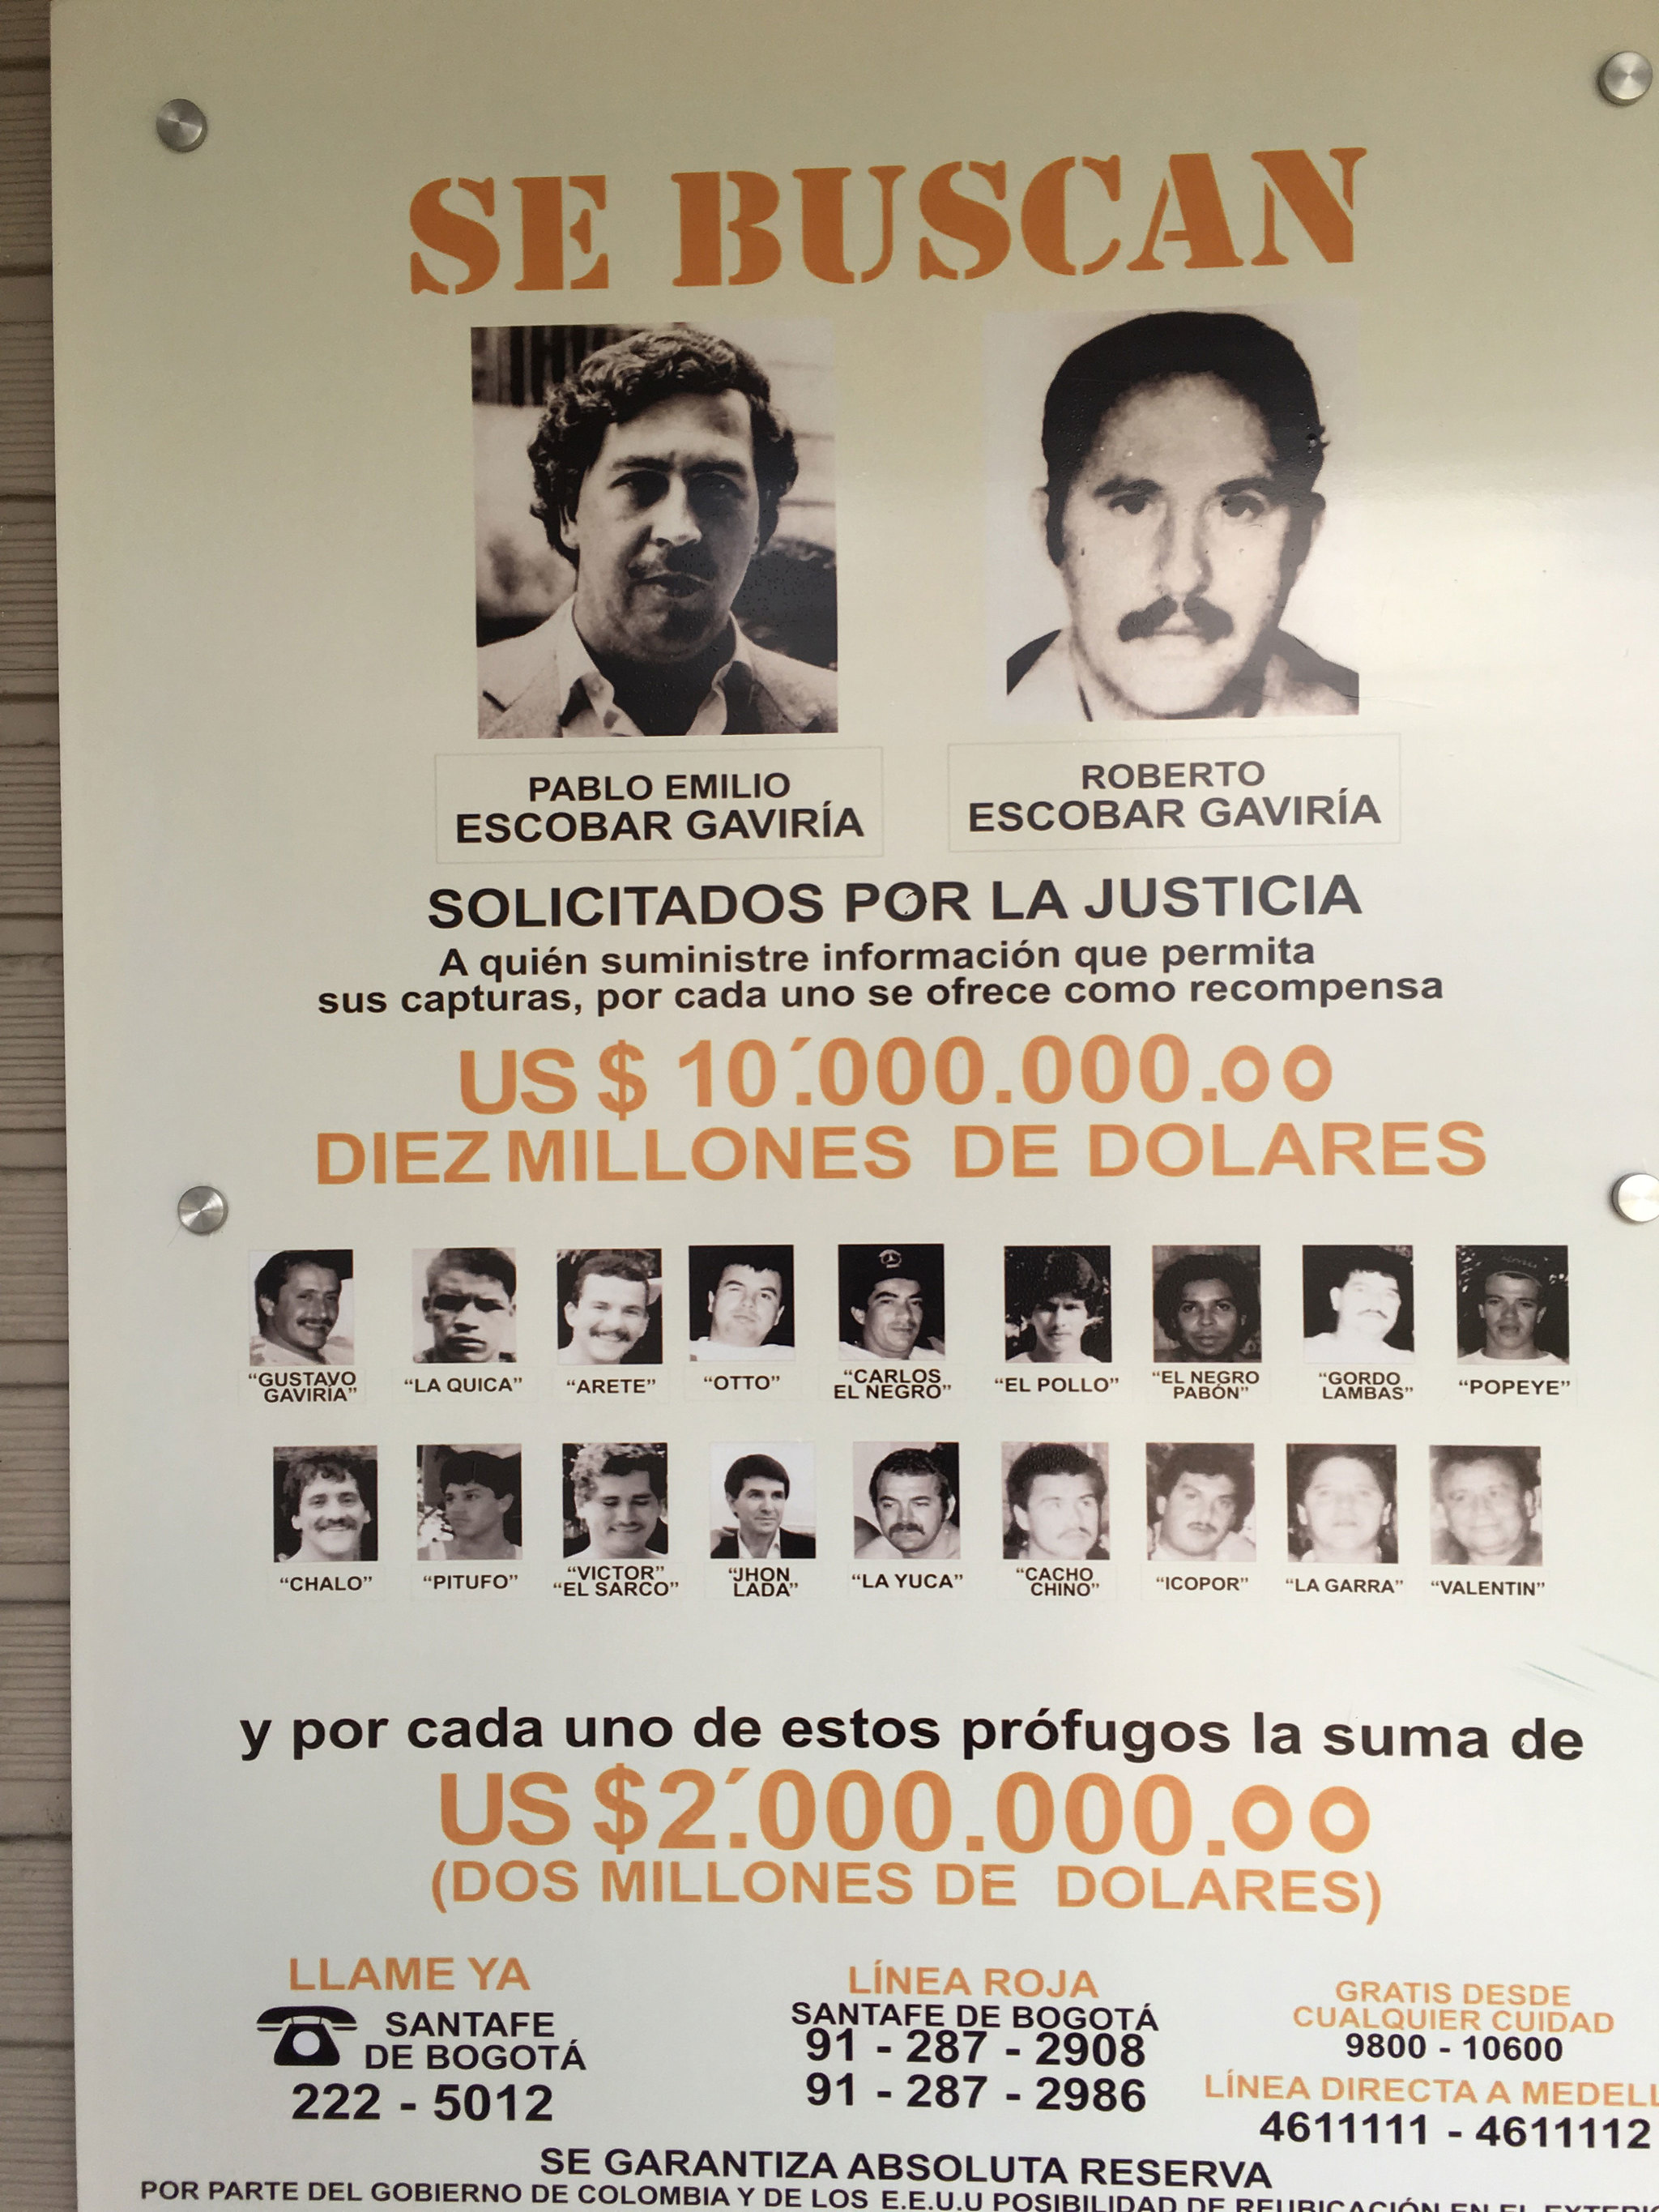 medellin cartel and pablo escobar Though el padrino was the face of the organization, there's so much more to the medellin cartel than just pablo escobar.